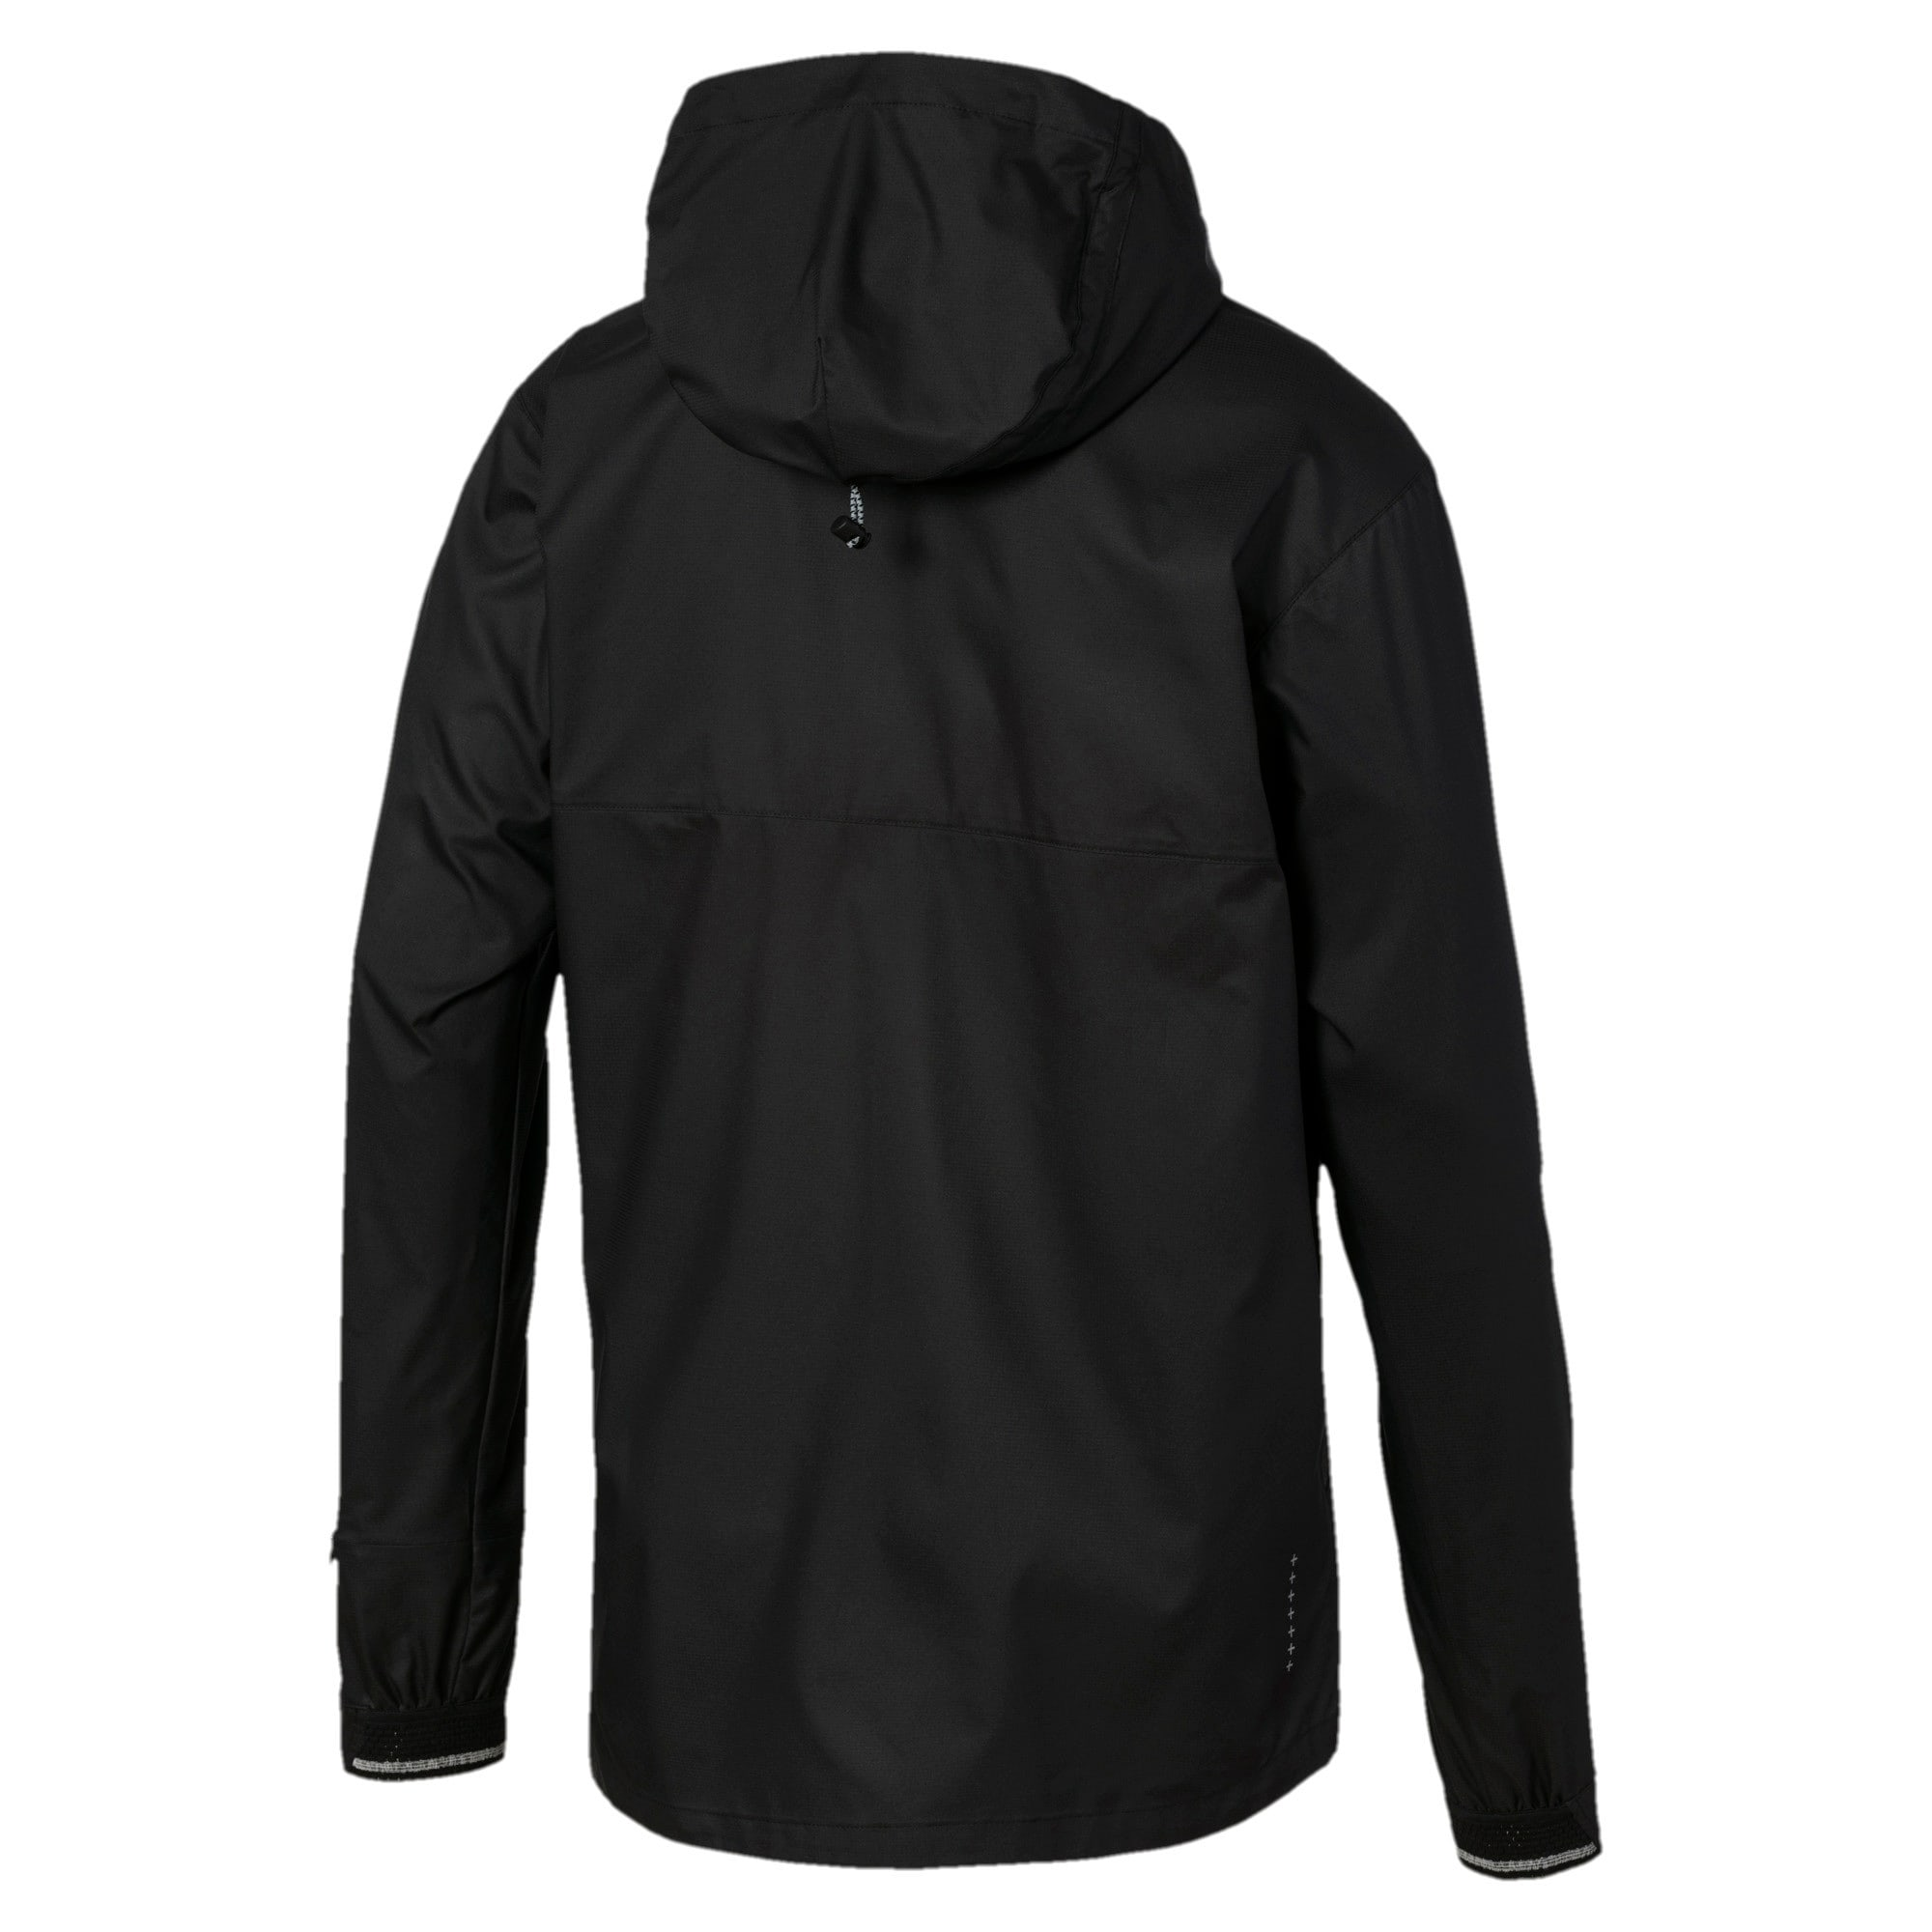 Thumbnail 5 of Last Lap VIZ Men's Running Jacket, Puma Black, medium